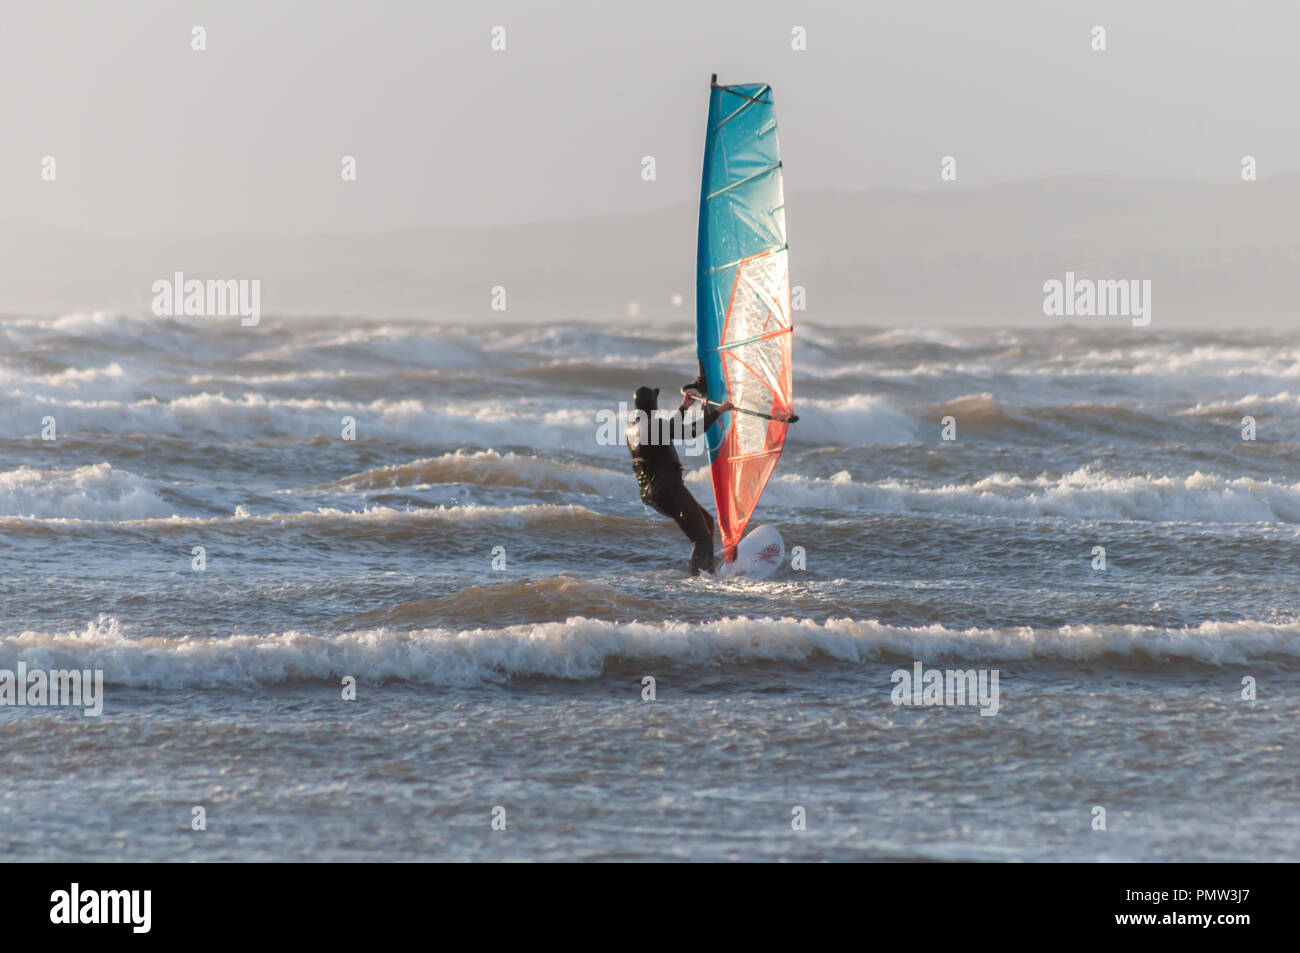 Barassie, Scotland, UK. 19th September, 2018. UK Weather: A windsurfer braves Storm Ali, the first named storm of the winter season. The Met Office have issued an amber weather warning for this area with strong winds and heavy rainfall. Credit: Skully/Alamy Live News - Stock Image